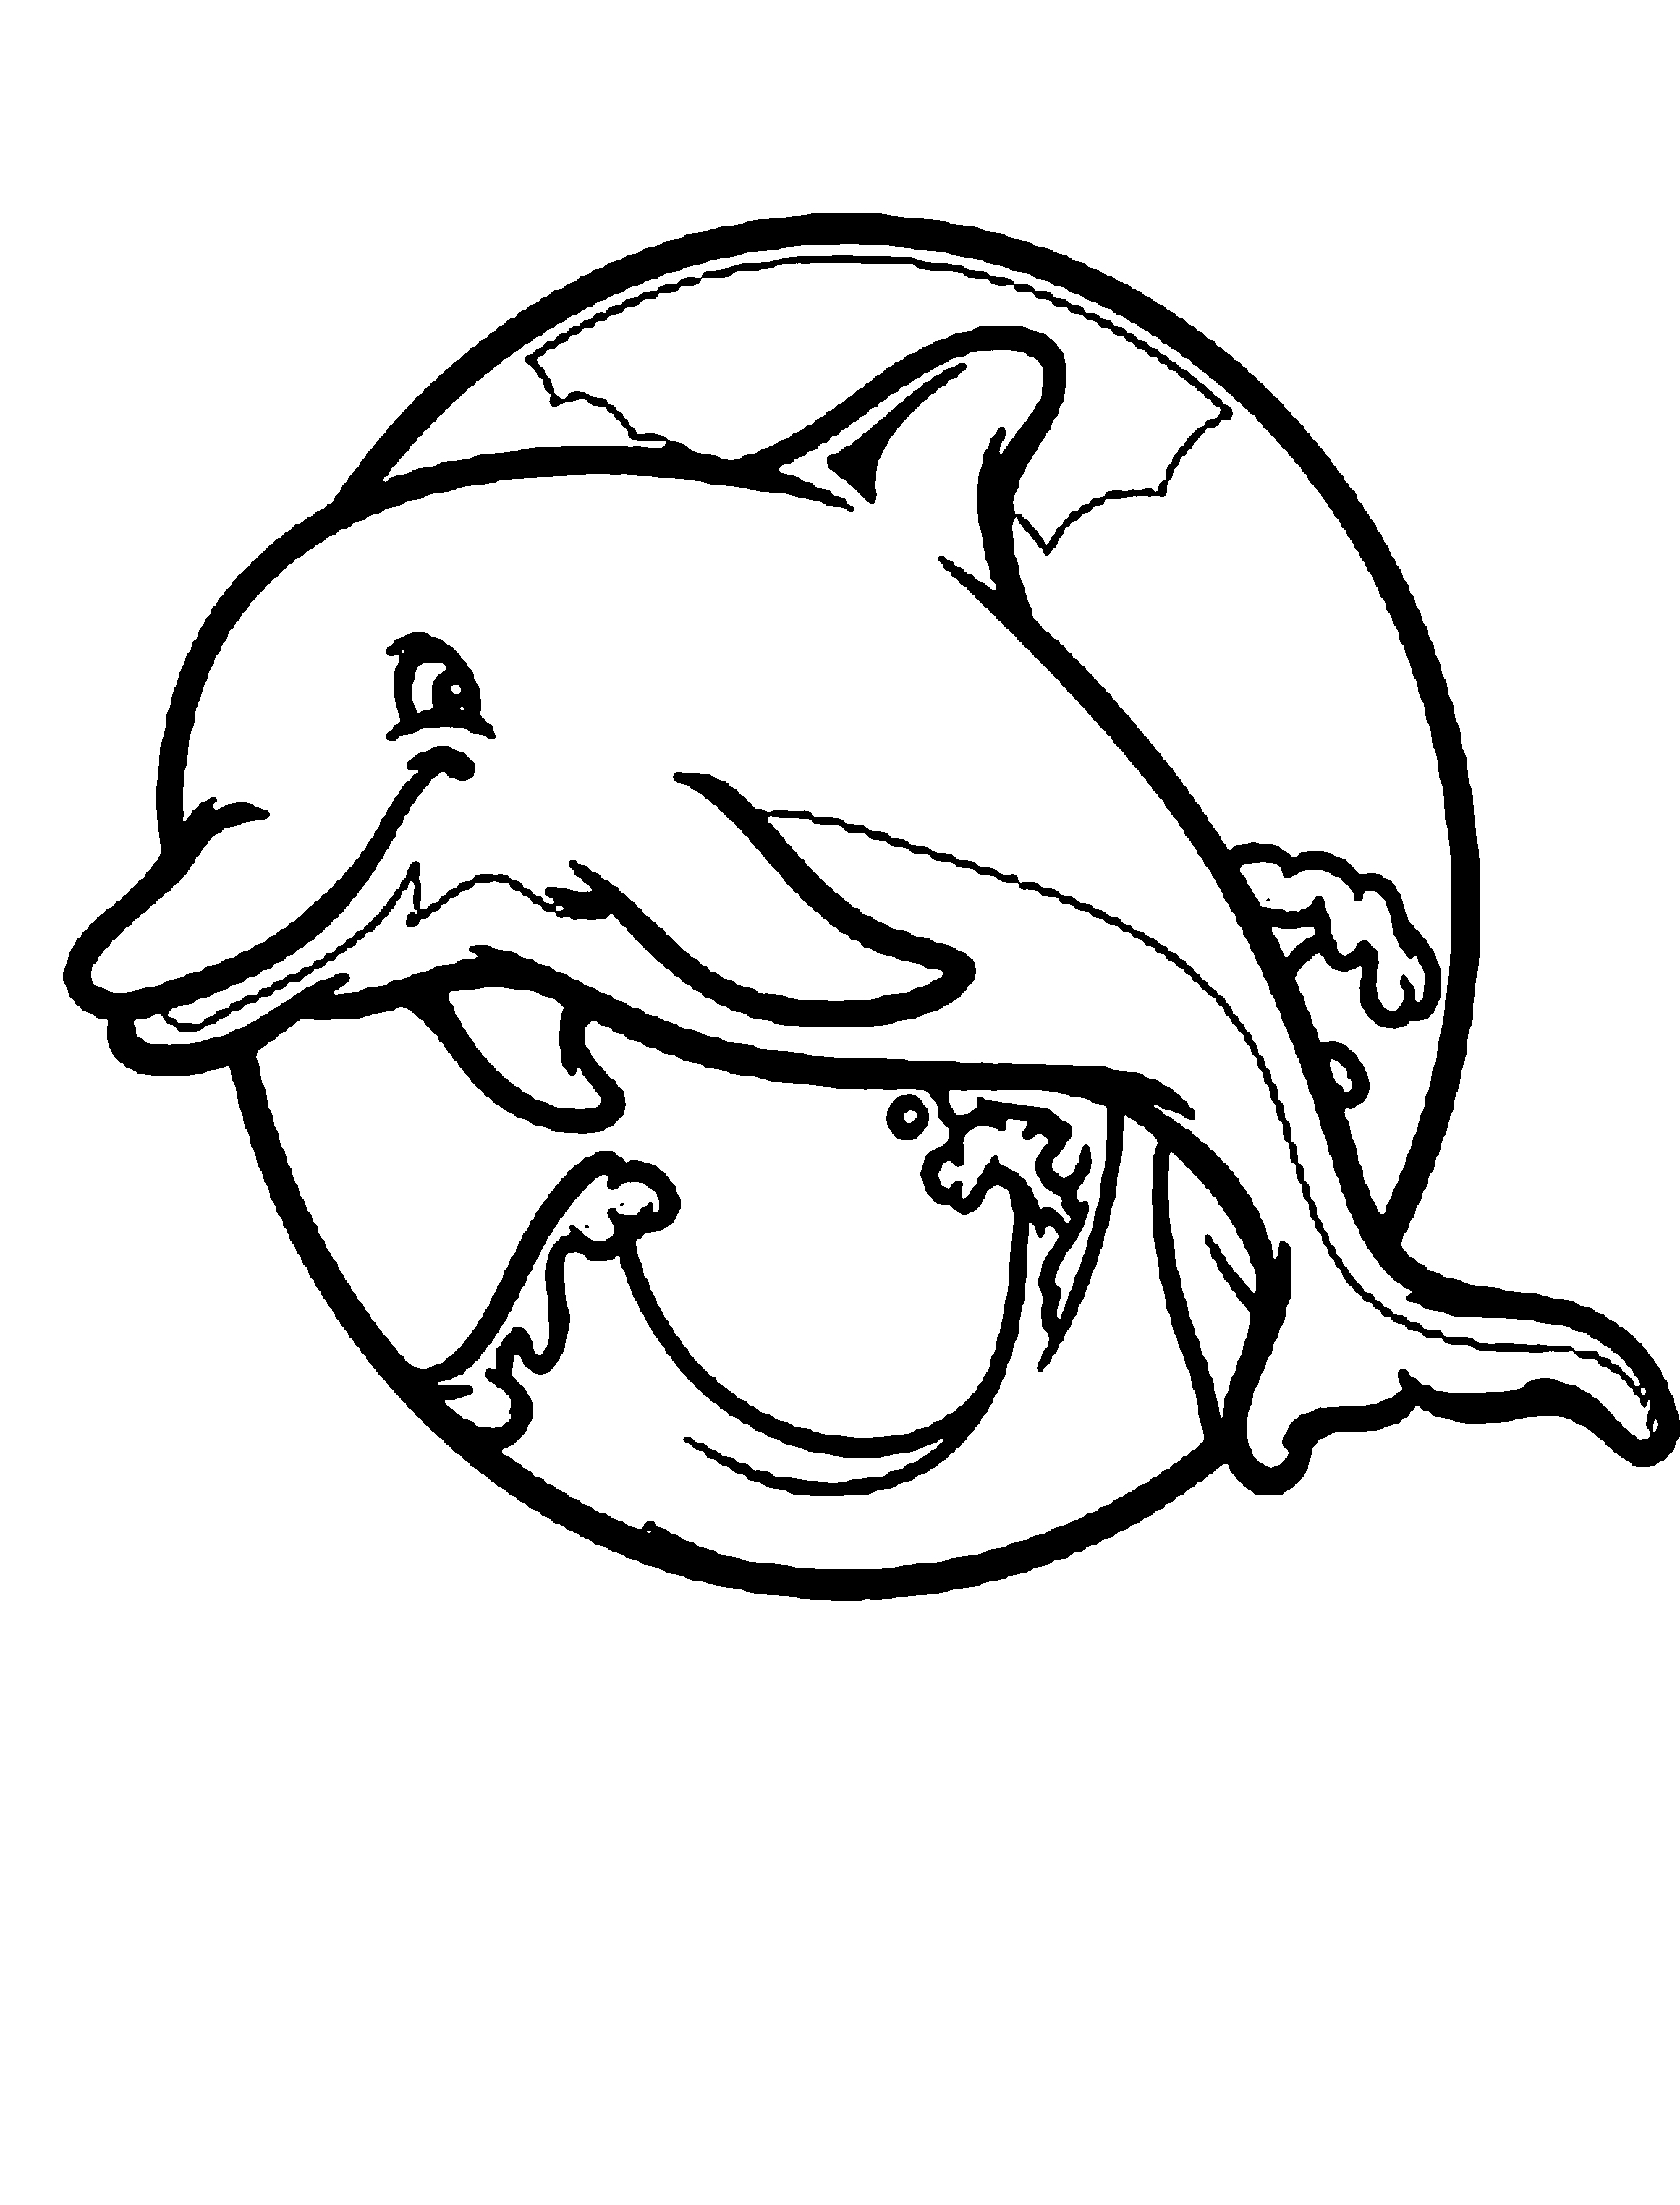 Pictures Of Dolphins For Kids - Cliparts.co